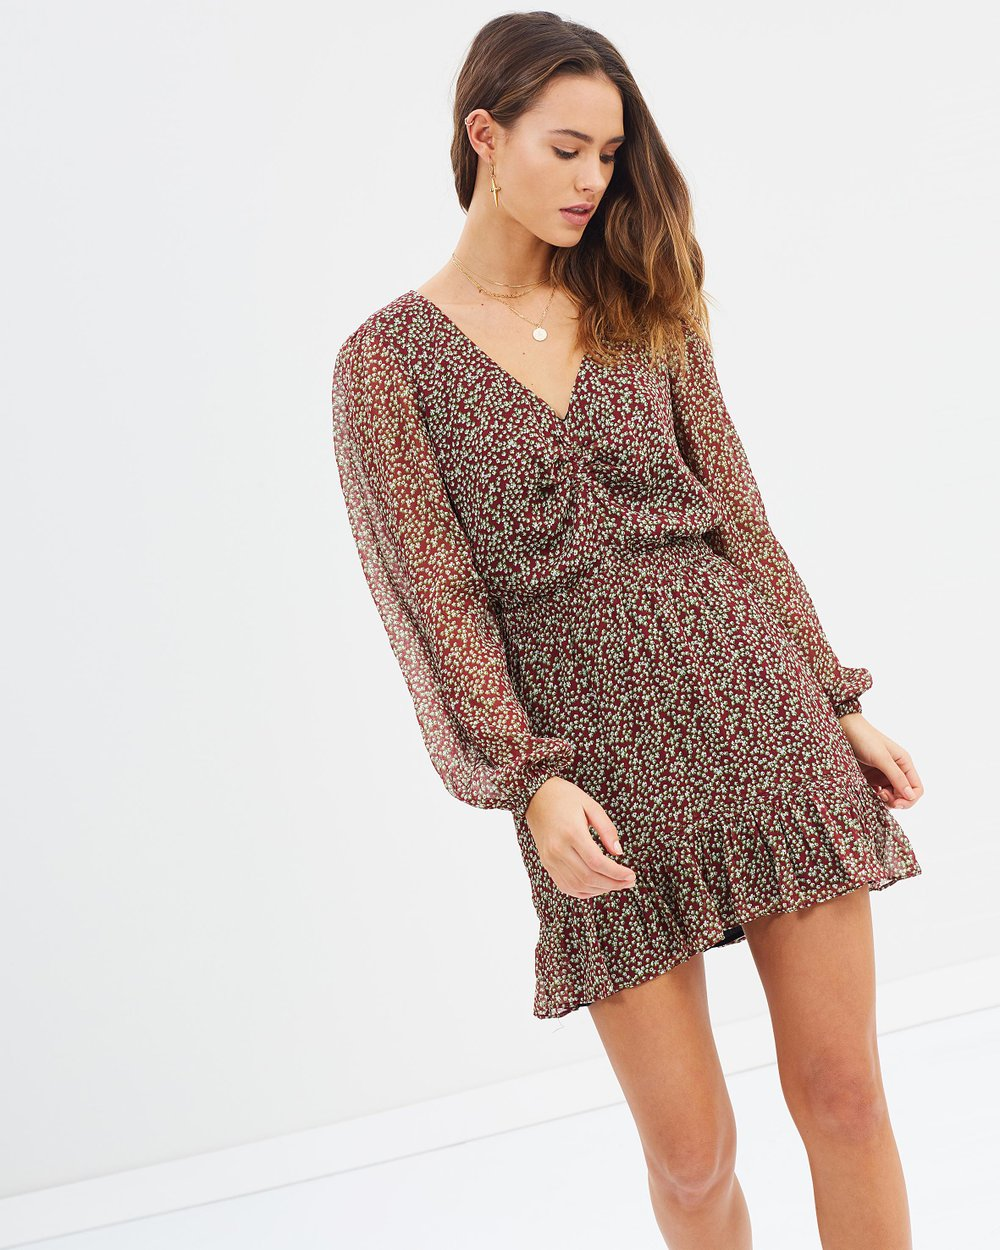 3fea23853a Arielle Mini Dress by The East Order Online   THE ICONIC   Australia